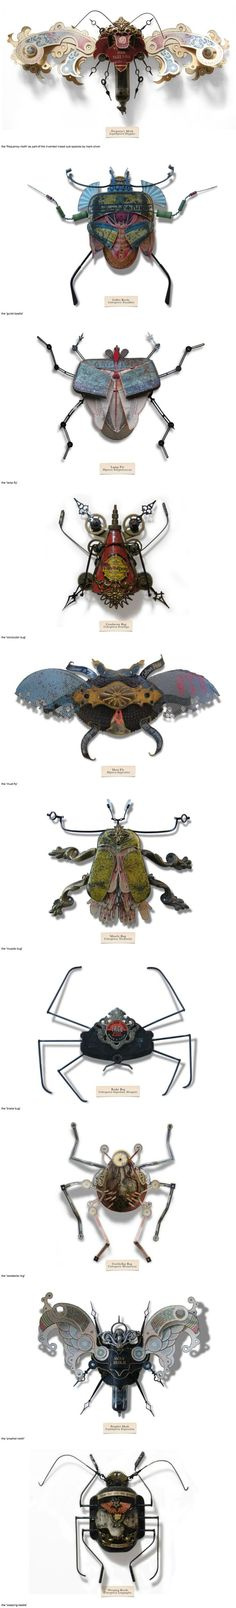 """Mark Oliver has created a series of insects called """"LitterBugs"""" brought to life entirely from trash; a species developed to adapt to the harsh, changing urban landscape. They are part of an invented genus, affectionately categorized in a document known as the """"compendium of carabid and terrestrial detritus"""" – each one having been given their own title and scientific name, some based off the found objects from which they are built. by randi"""